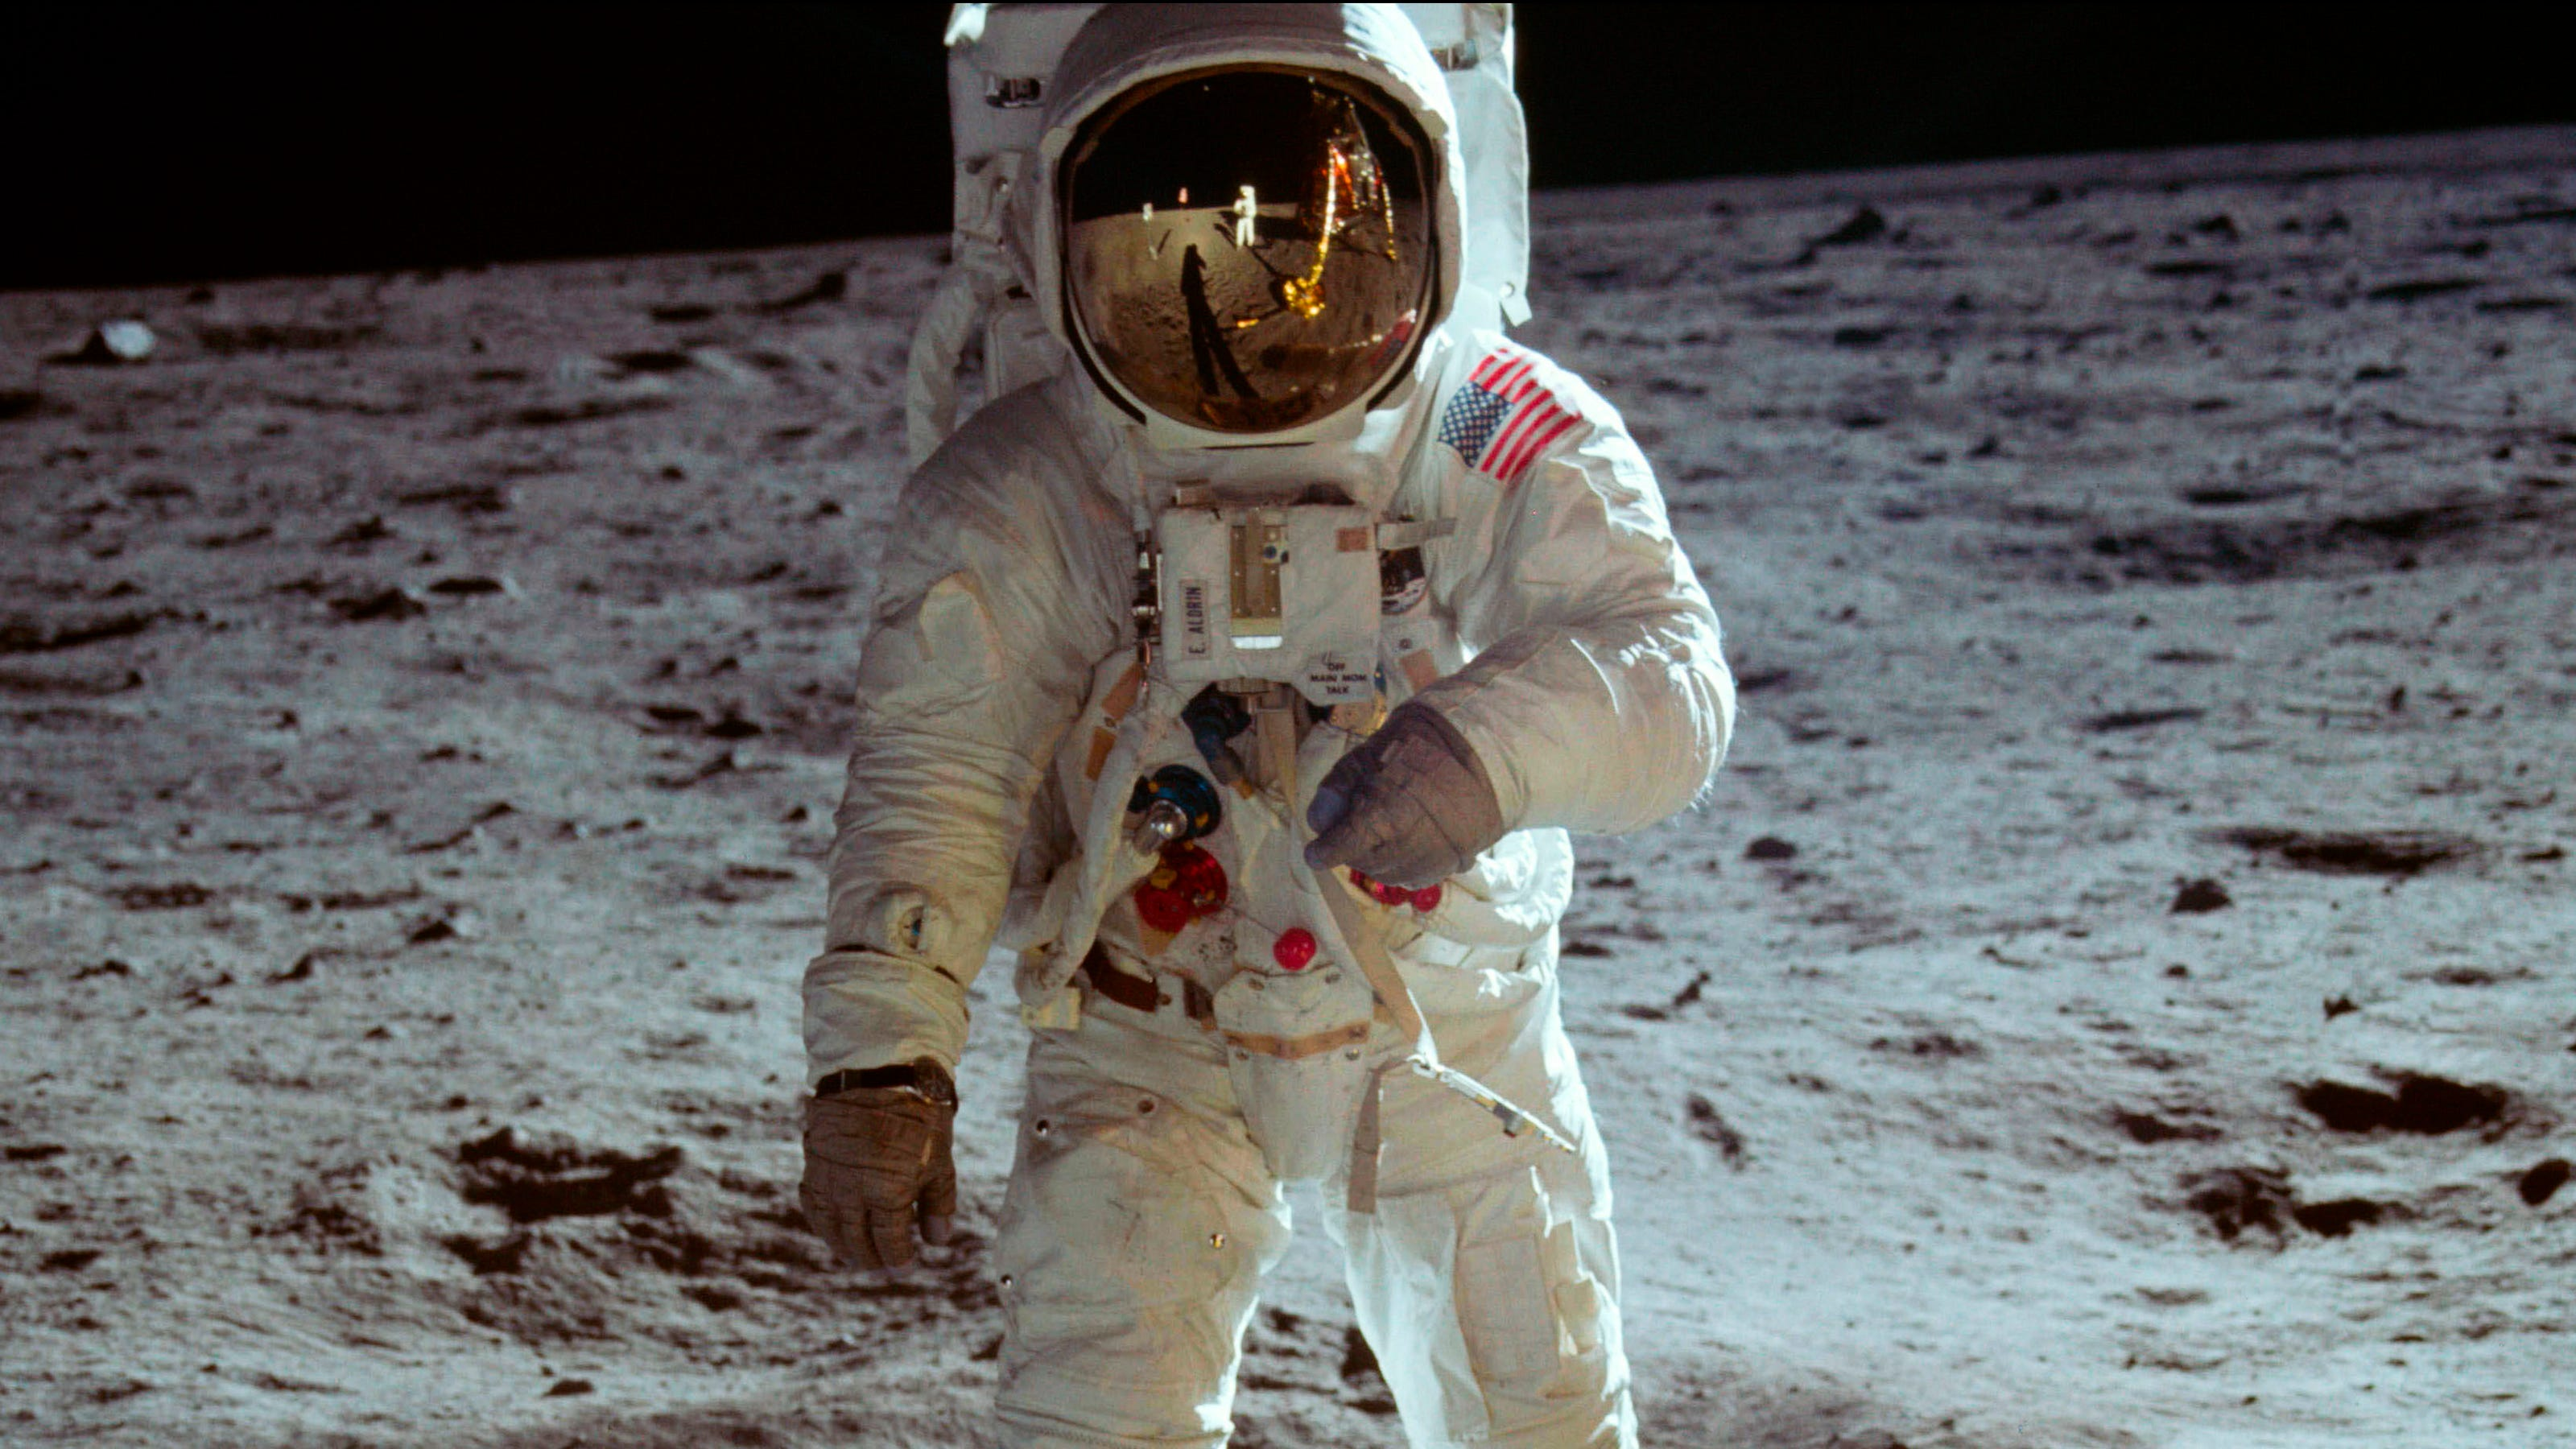 Apollo 11': New documentary focuses on flag after 'First Man' outrage